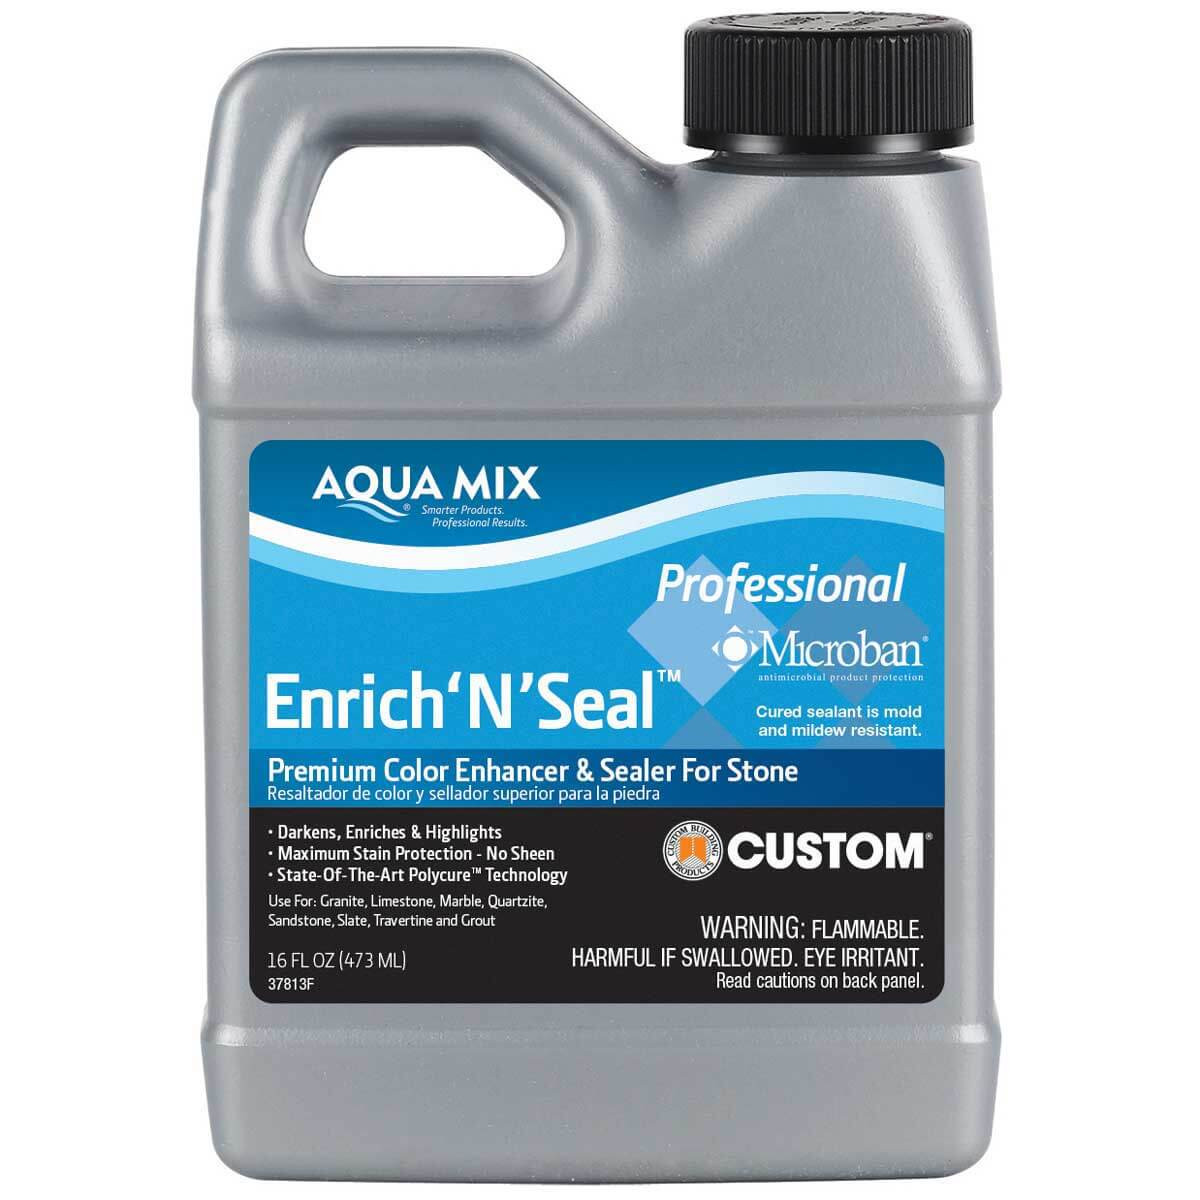 1 Pint Aqua Mix Enrich'N'Seal Penetrating Sealer 100250